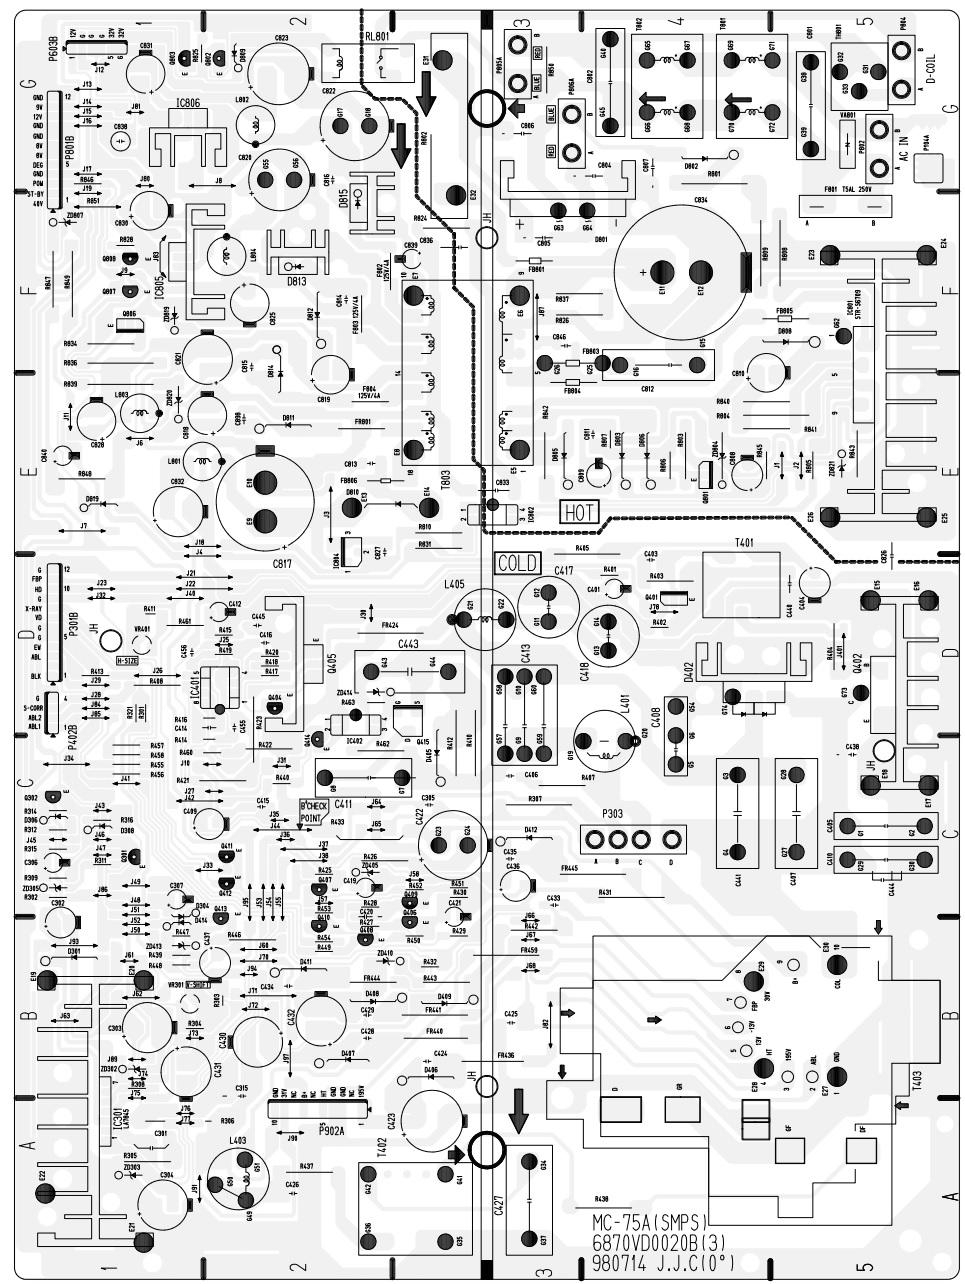 WP32A30 ndash LG 32 inch CRT TV ndash Circuit Diagram Schematic